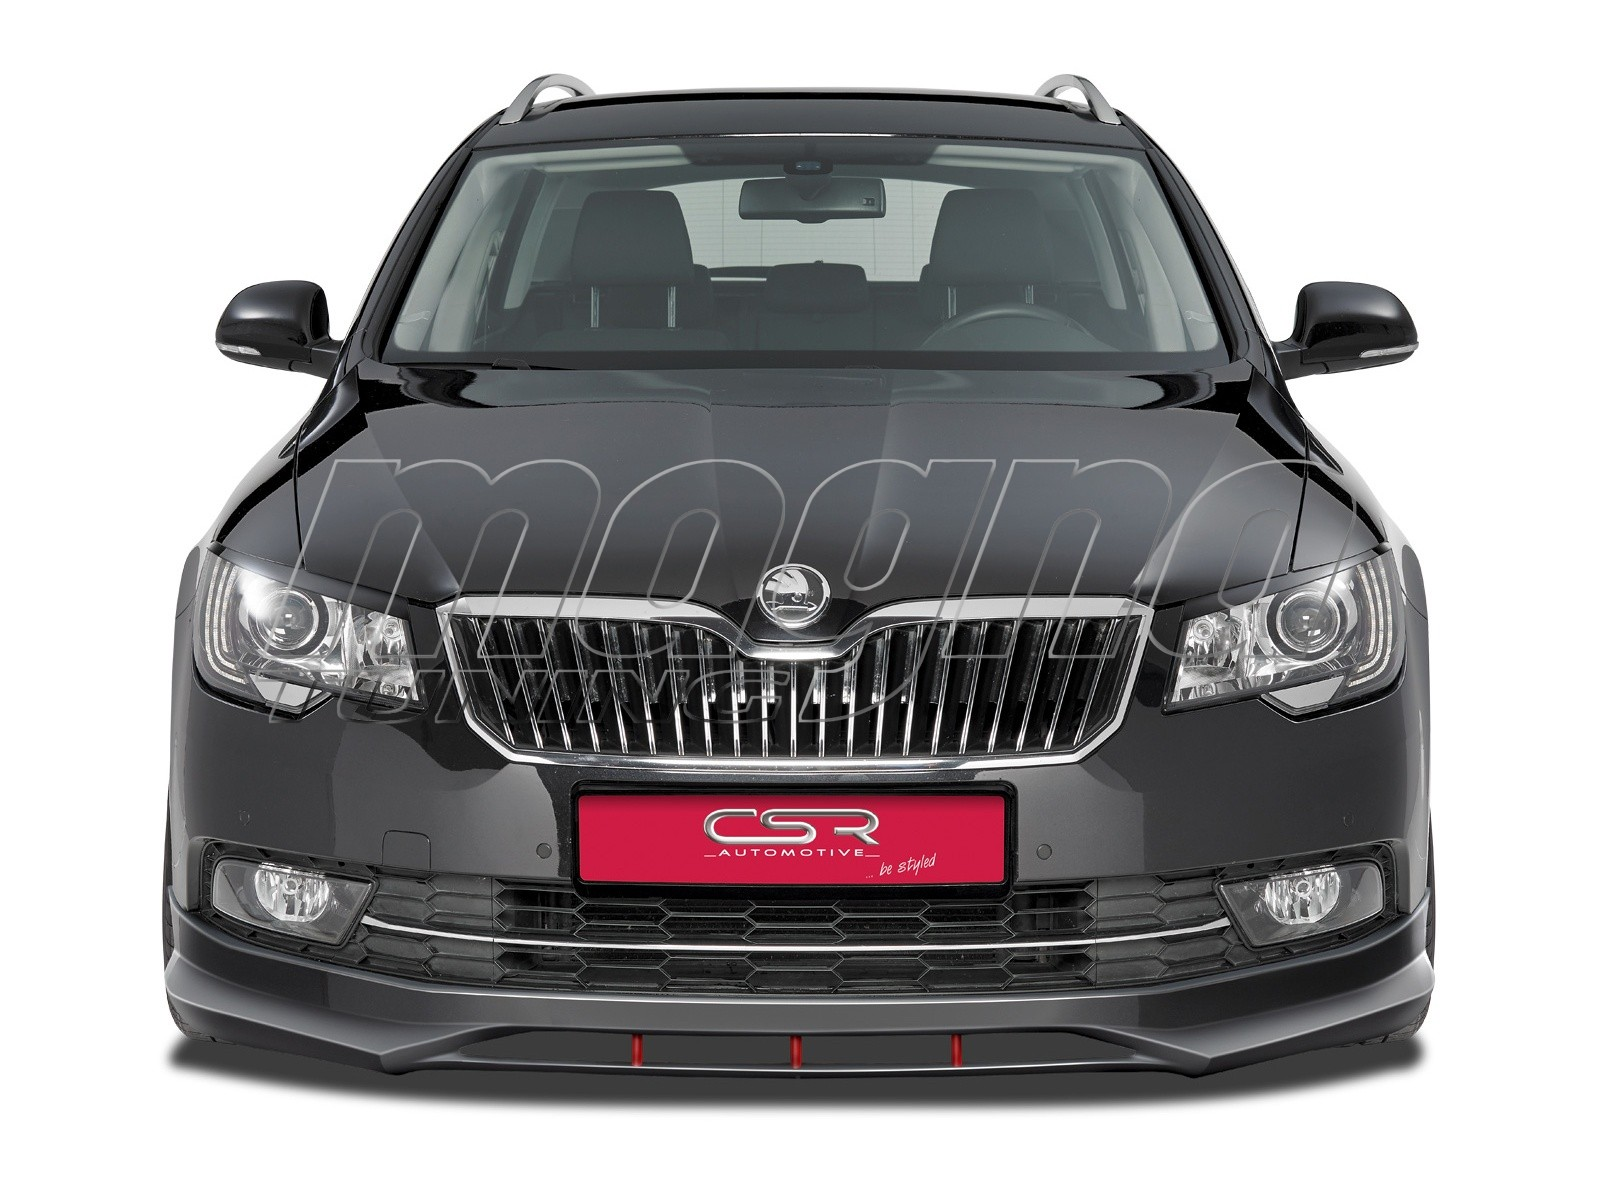 skoda superb b6 3t facelift variant n2 body kit. Black Bedroom Furniture Sets. Home Design Ideas